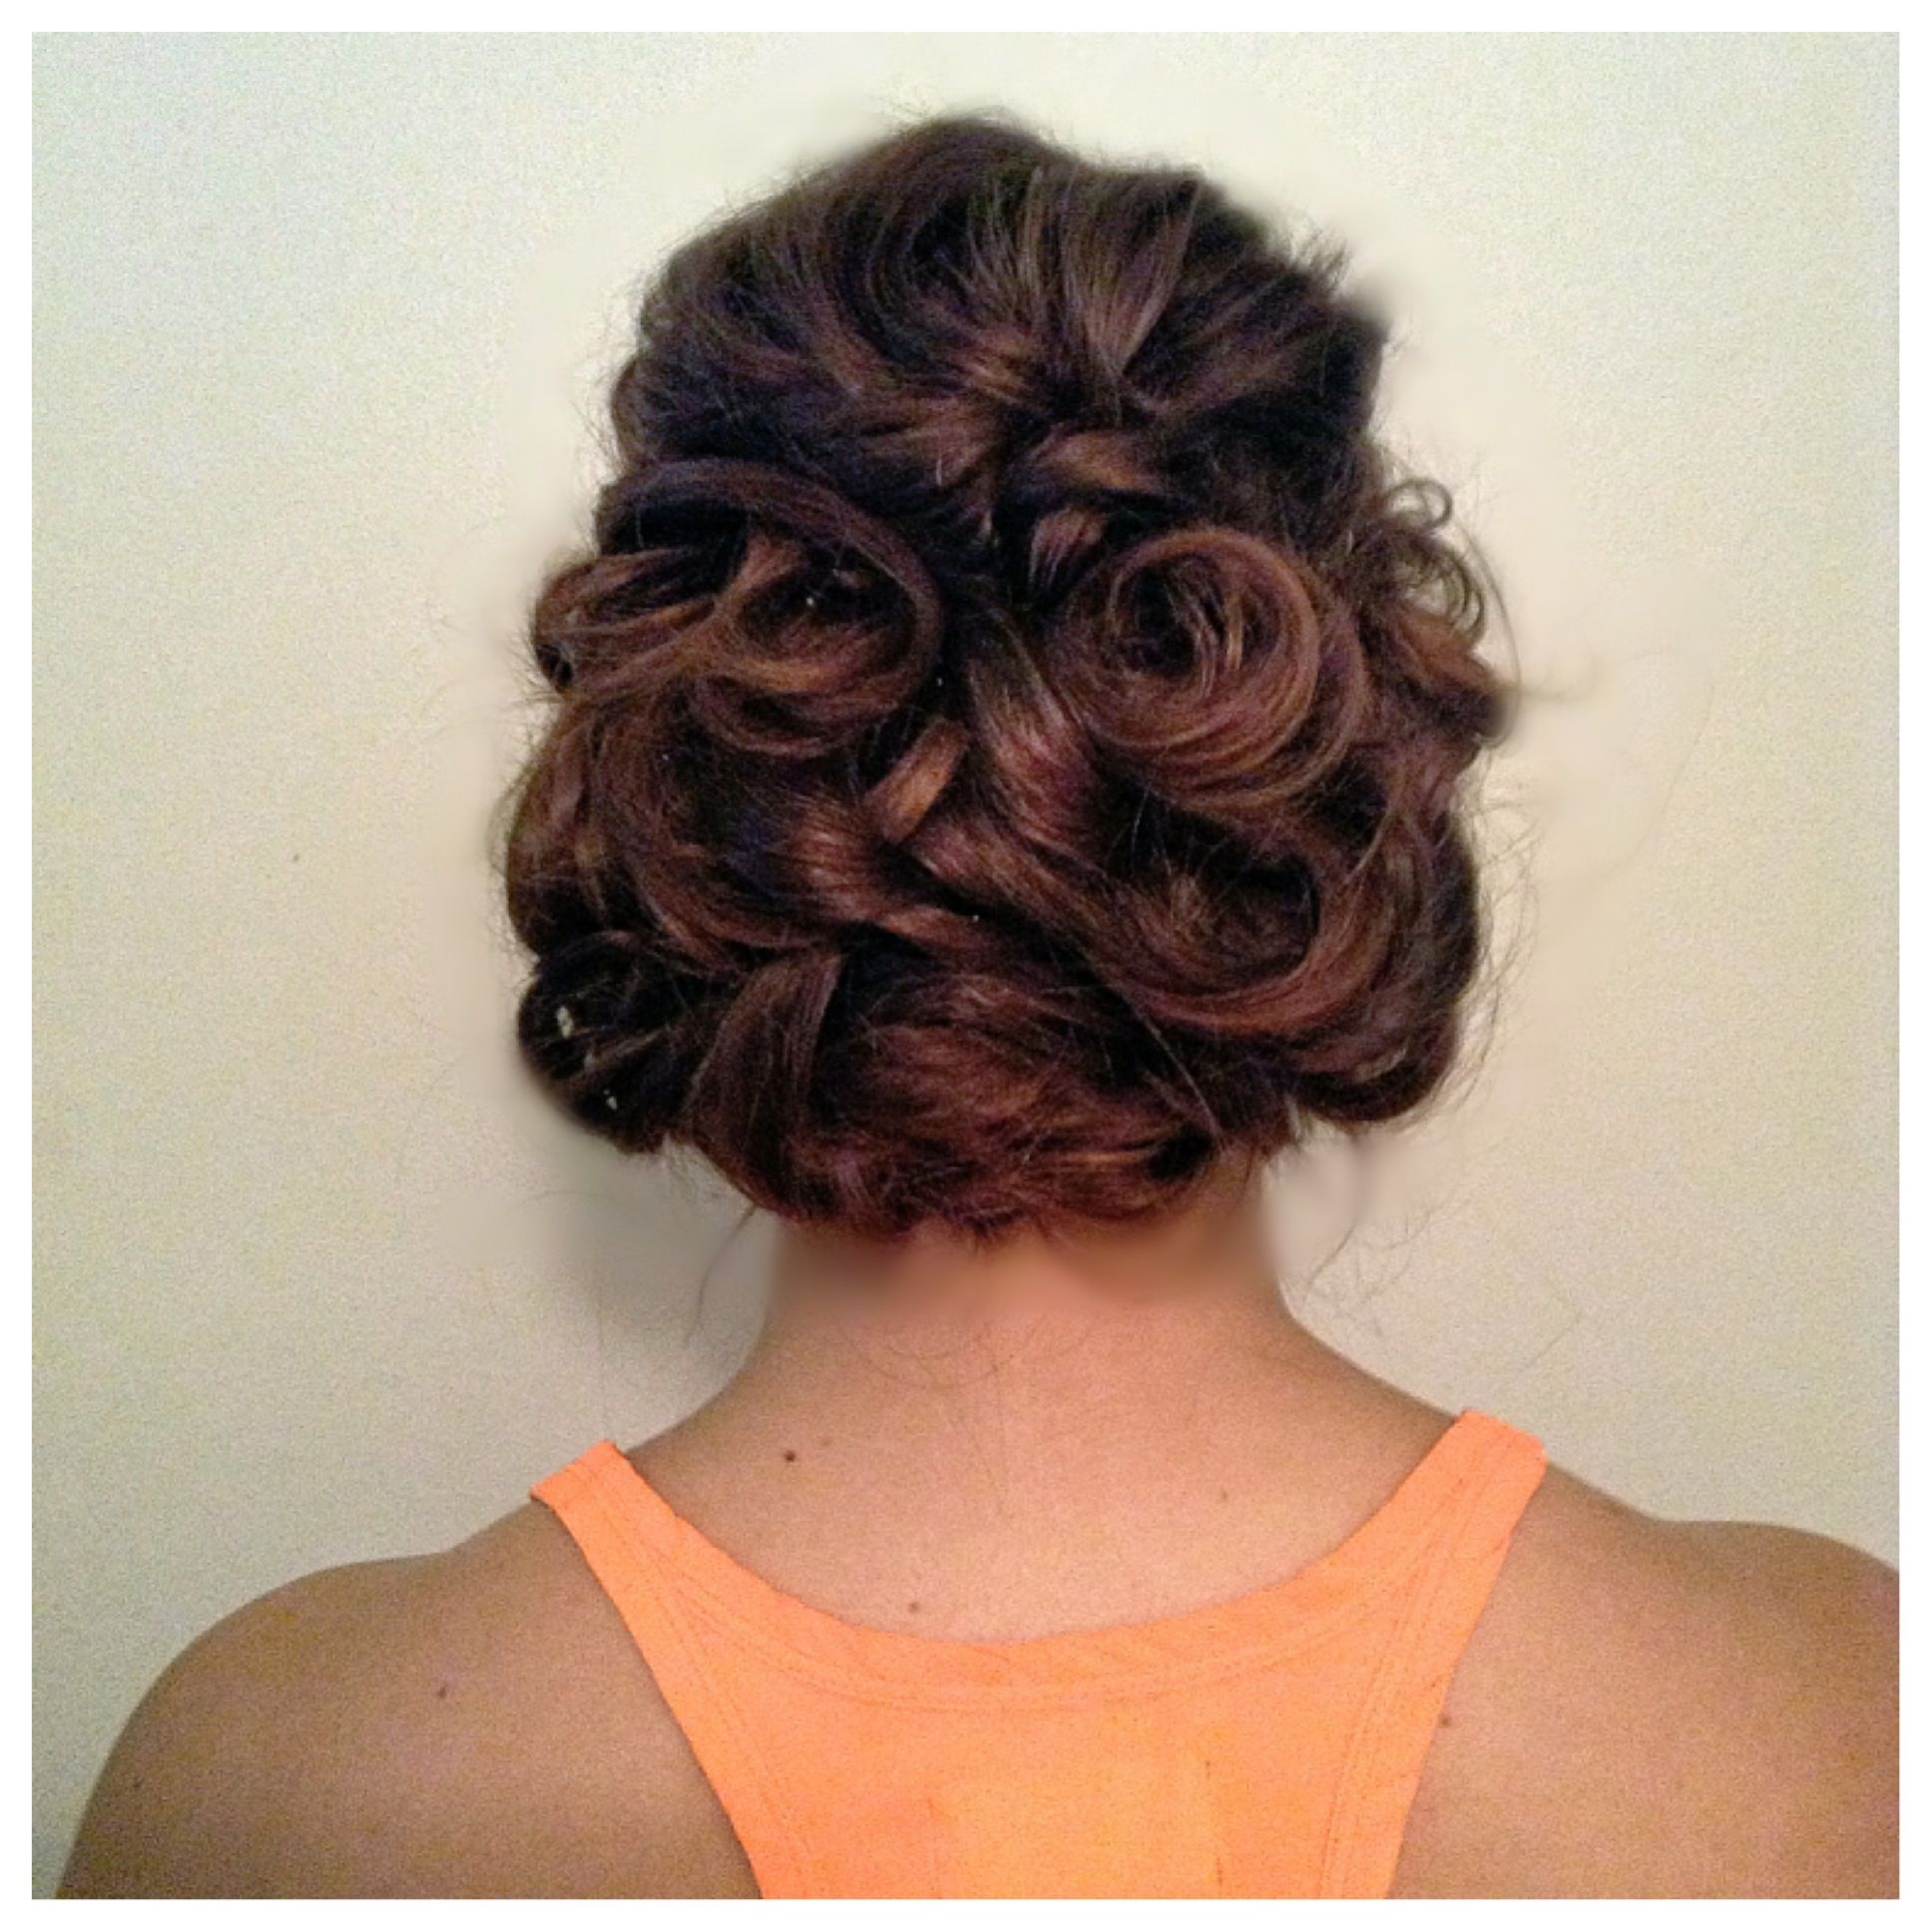 Prom hair hairstyle updo special occasion hairstyles pinterest